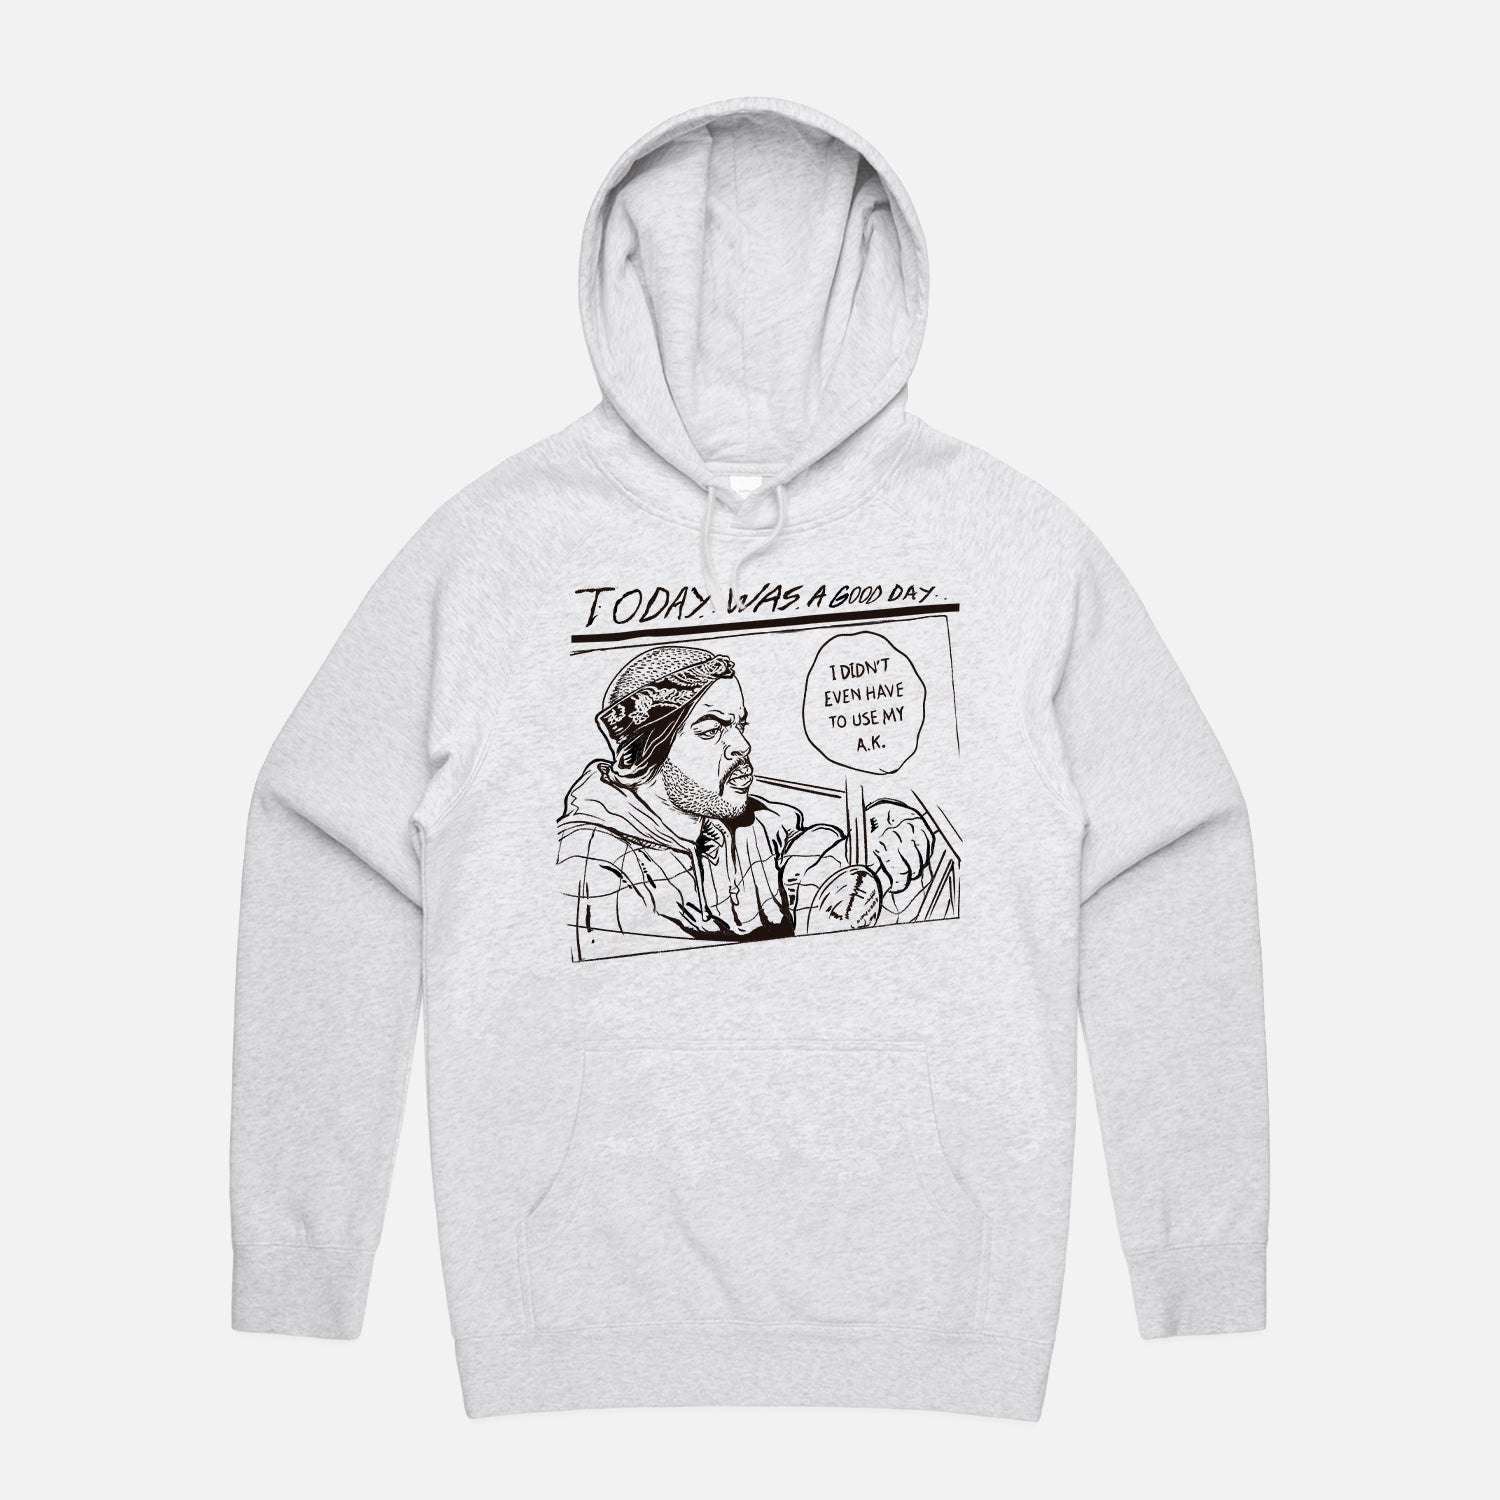 A Good Day Hoodie - LIMITEE